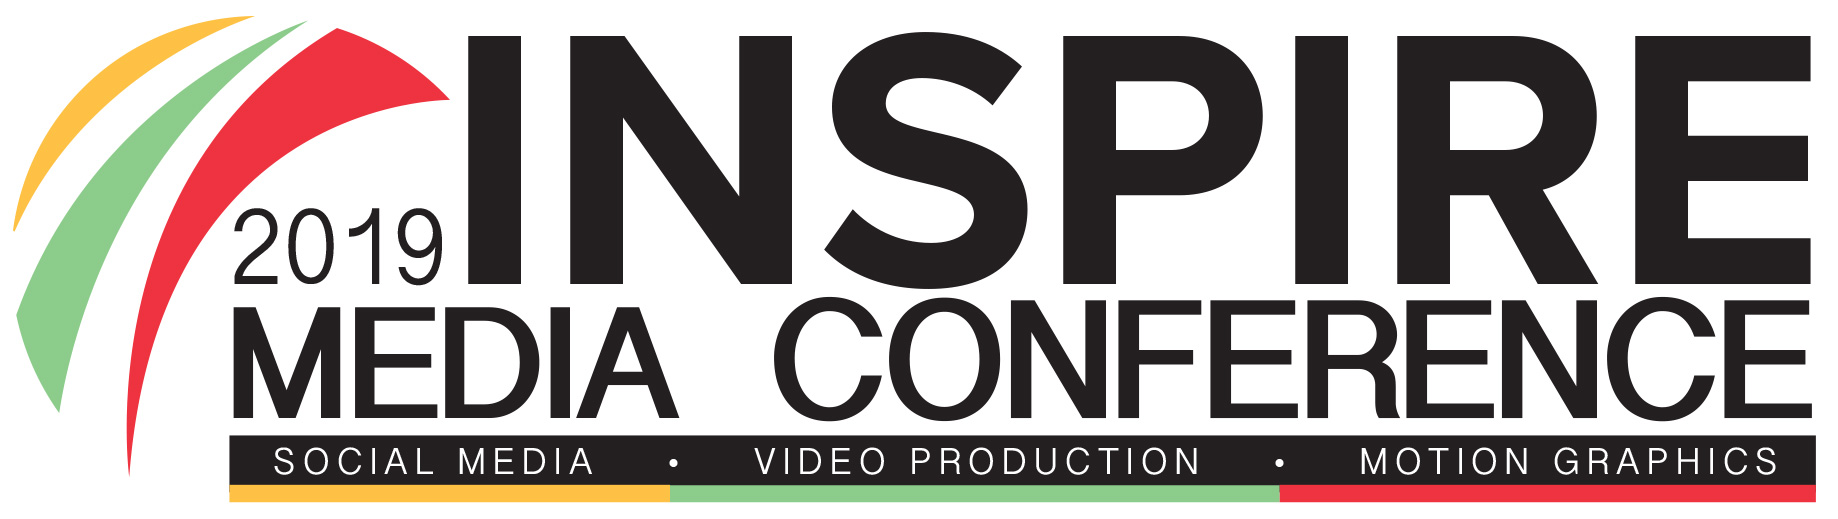 Are you coming to the Inspire Media Conference? 4